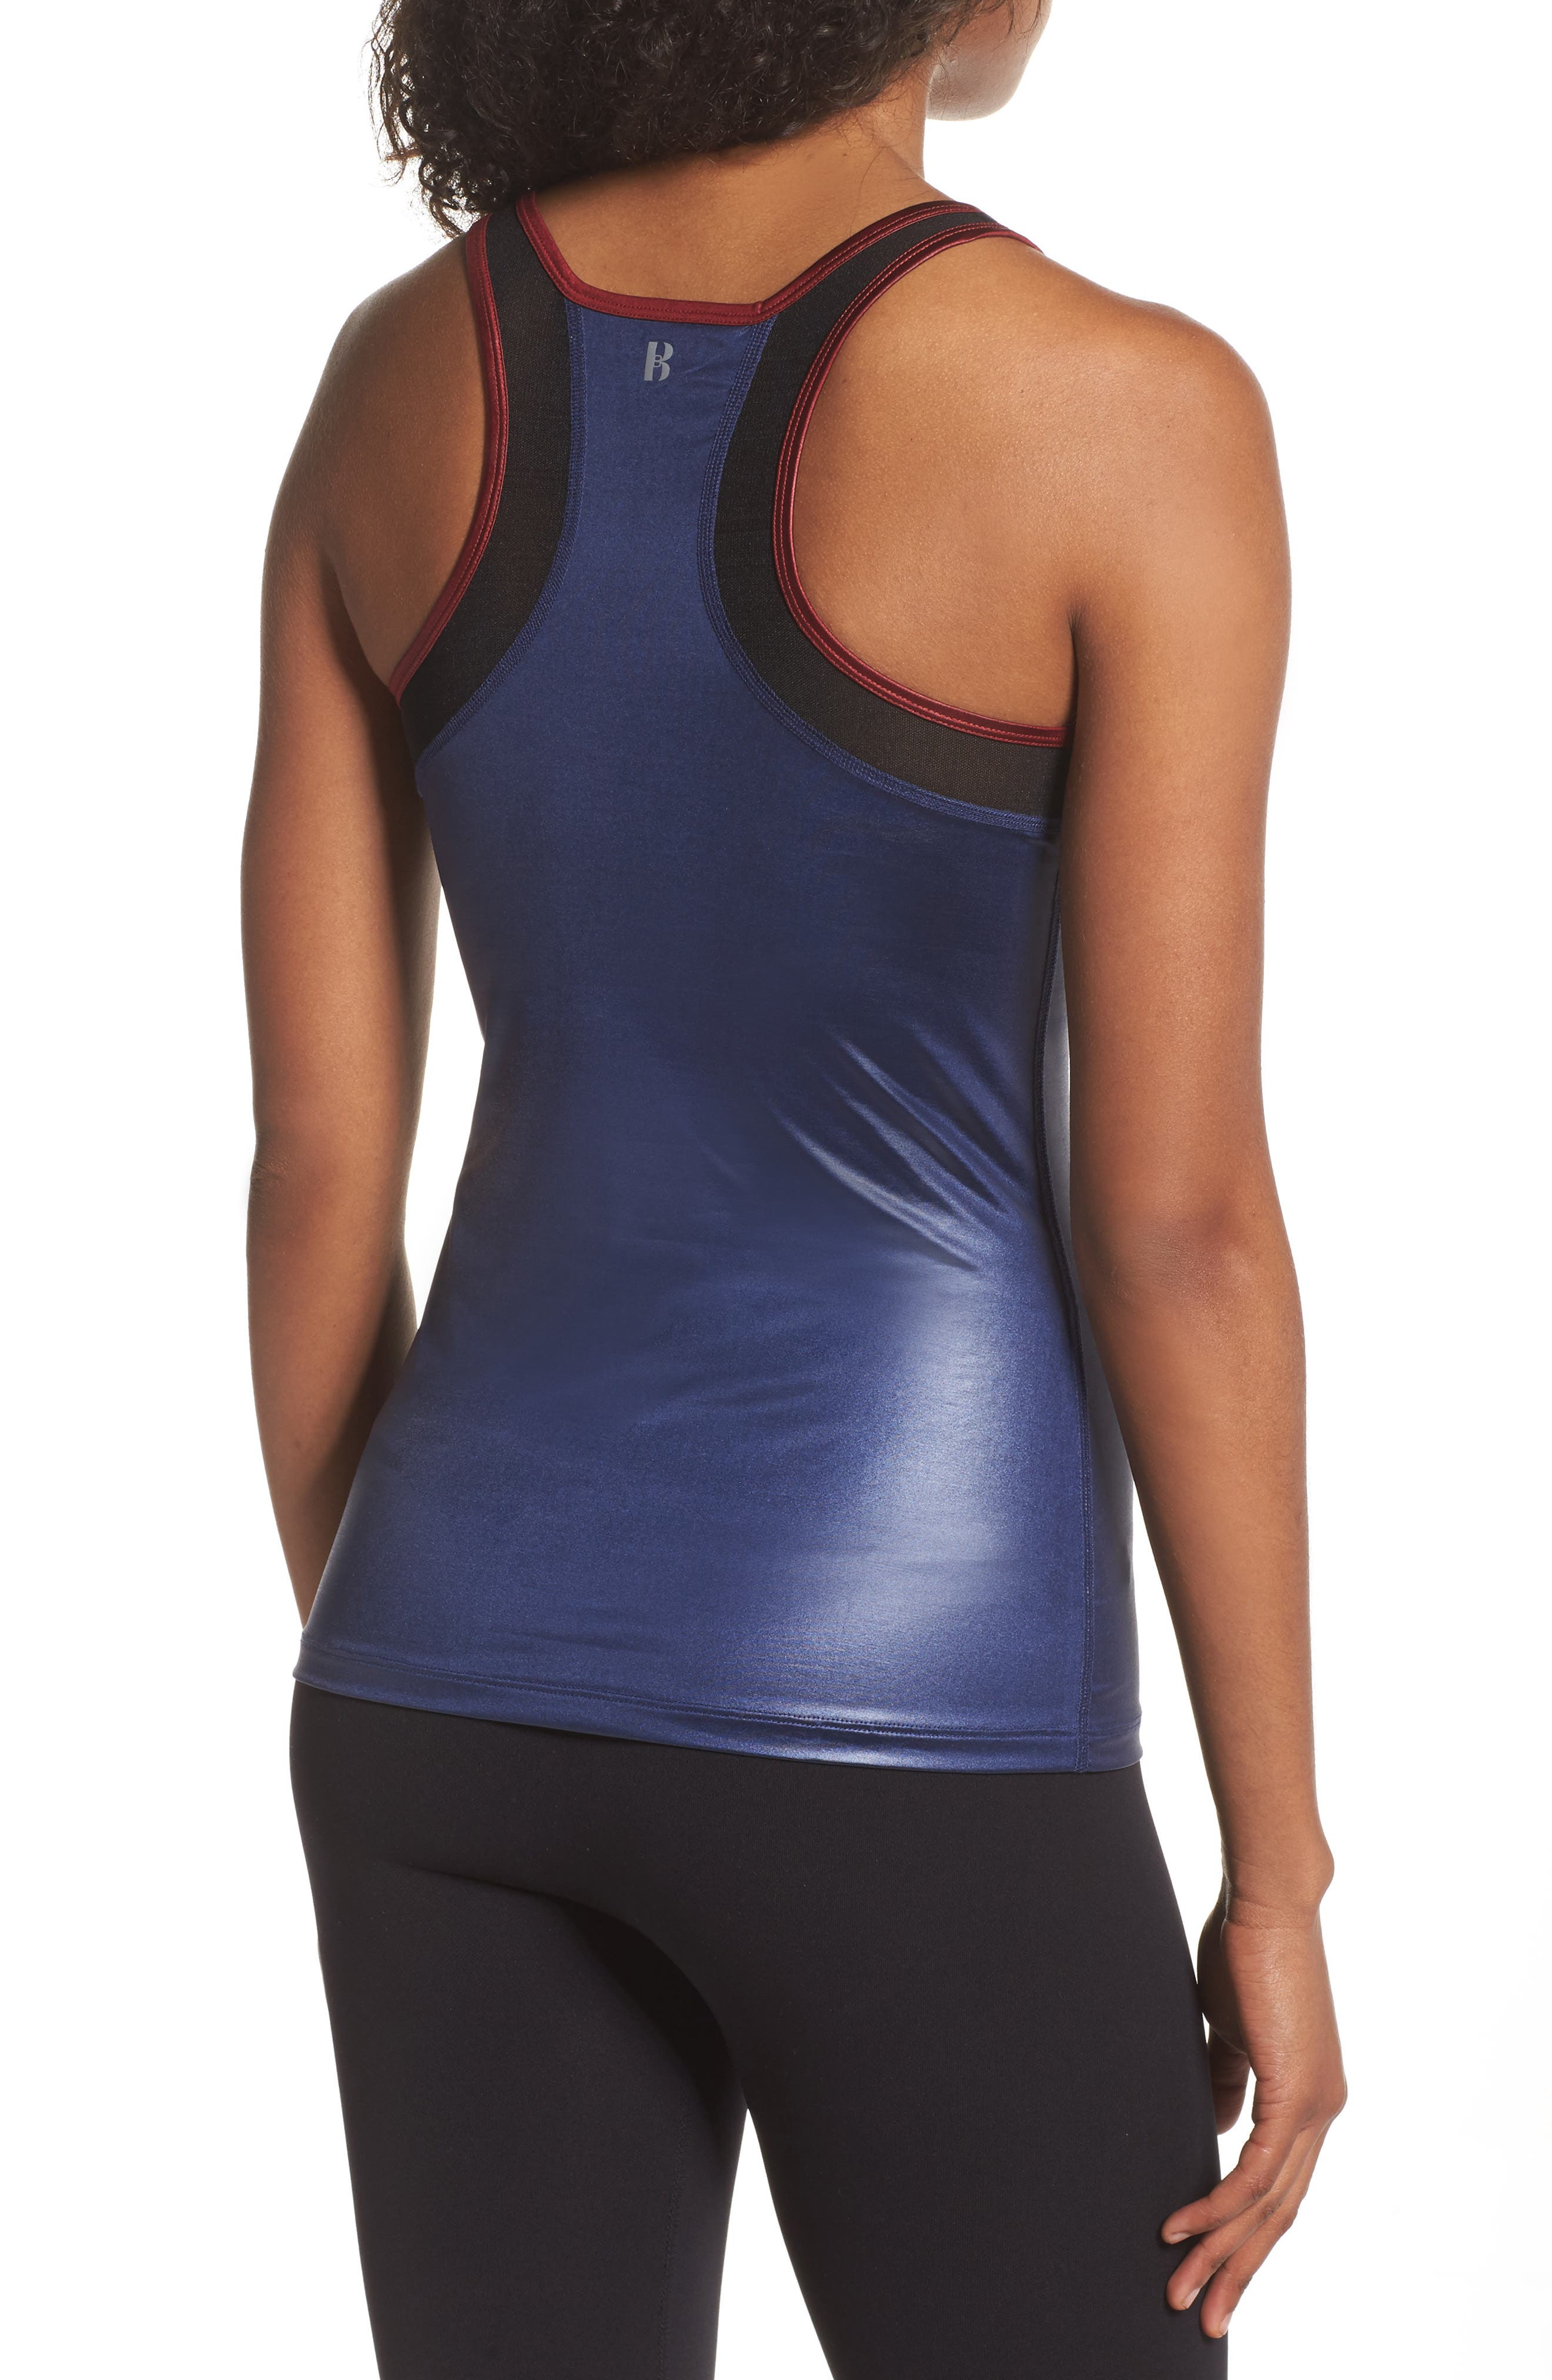 BoomBoom Athletica Glossy Tank,                             Alternate thumbnail 2, color,                             411